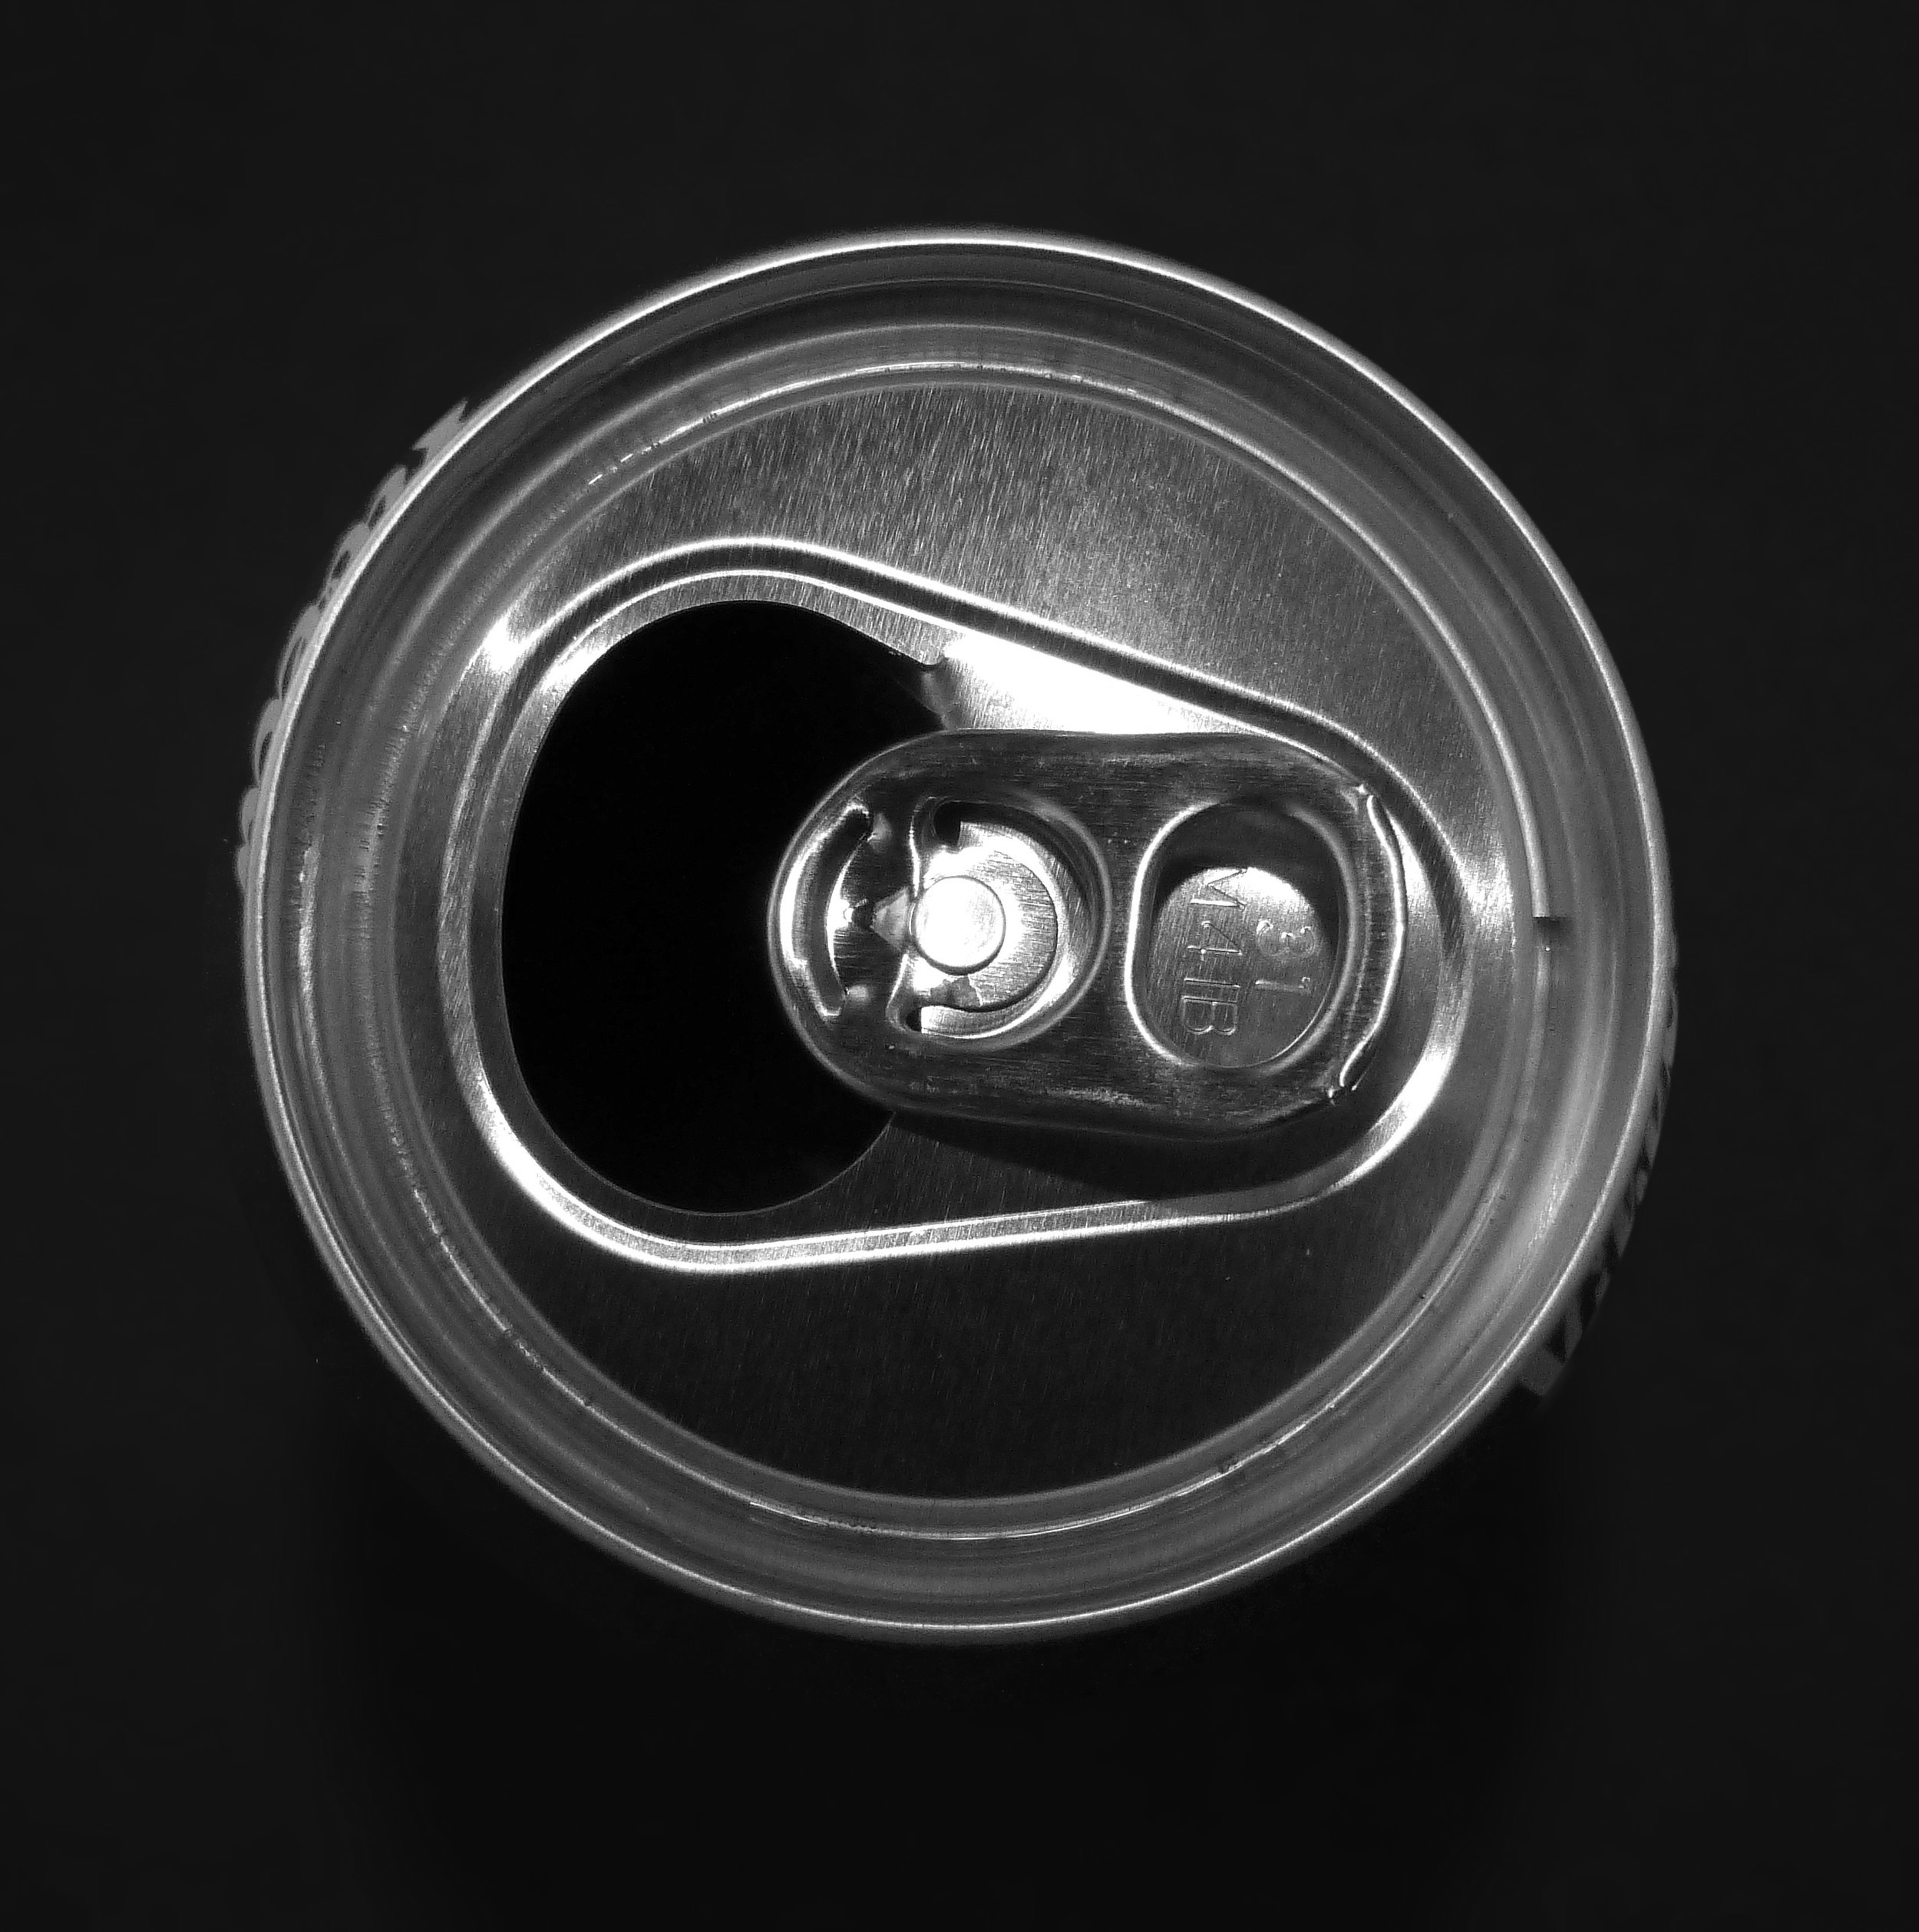 Canva - Can, Red, Overhead View, Drink, Beer.jpg